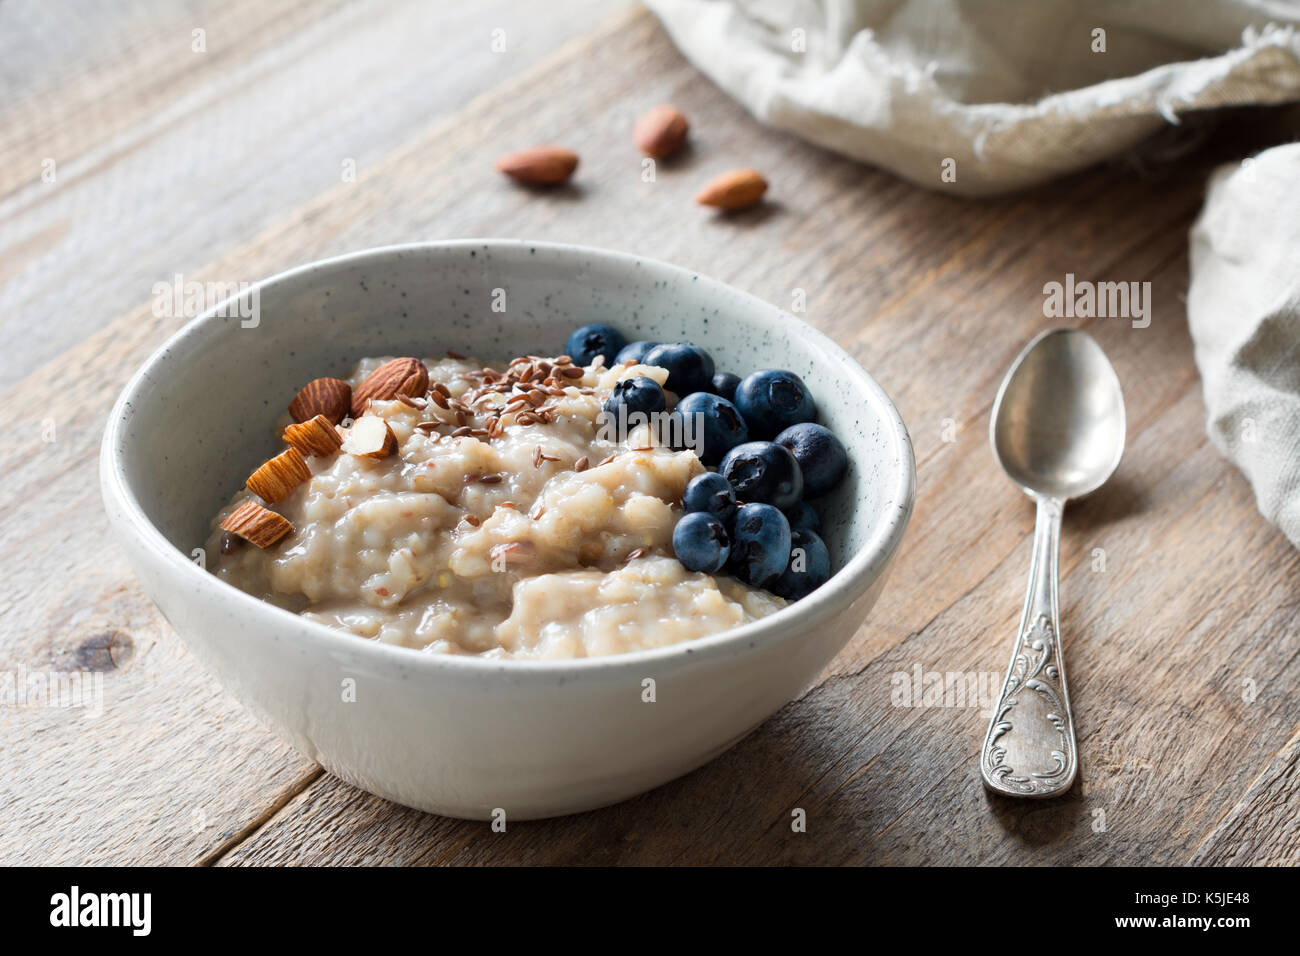 Oatmeal porridge with blueberries, almonds, linseeds in bowl on wooden table. Super food for healthy nutritious breakfast - Stock Image